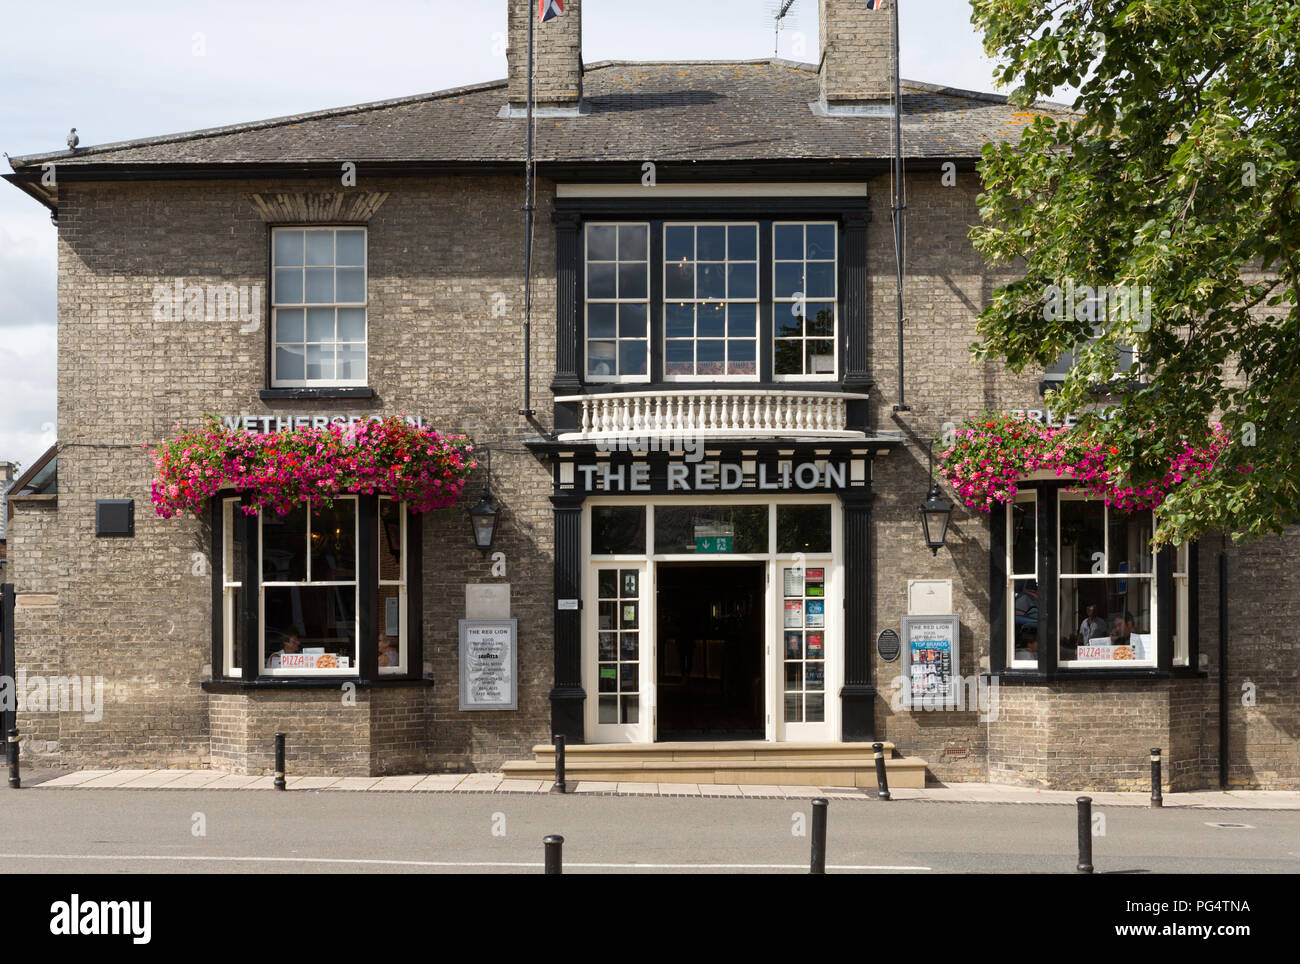 The Red Lion, Wetherspoons pub, Market Place, Thetford. Unsharpened - Stock Image